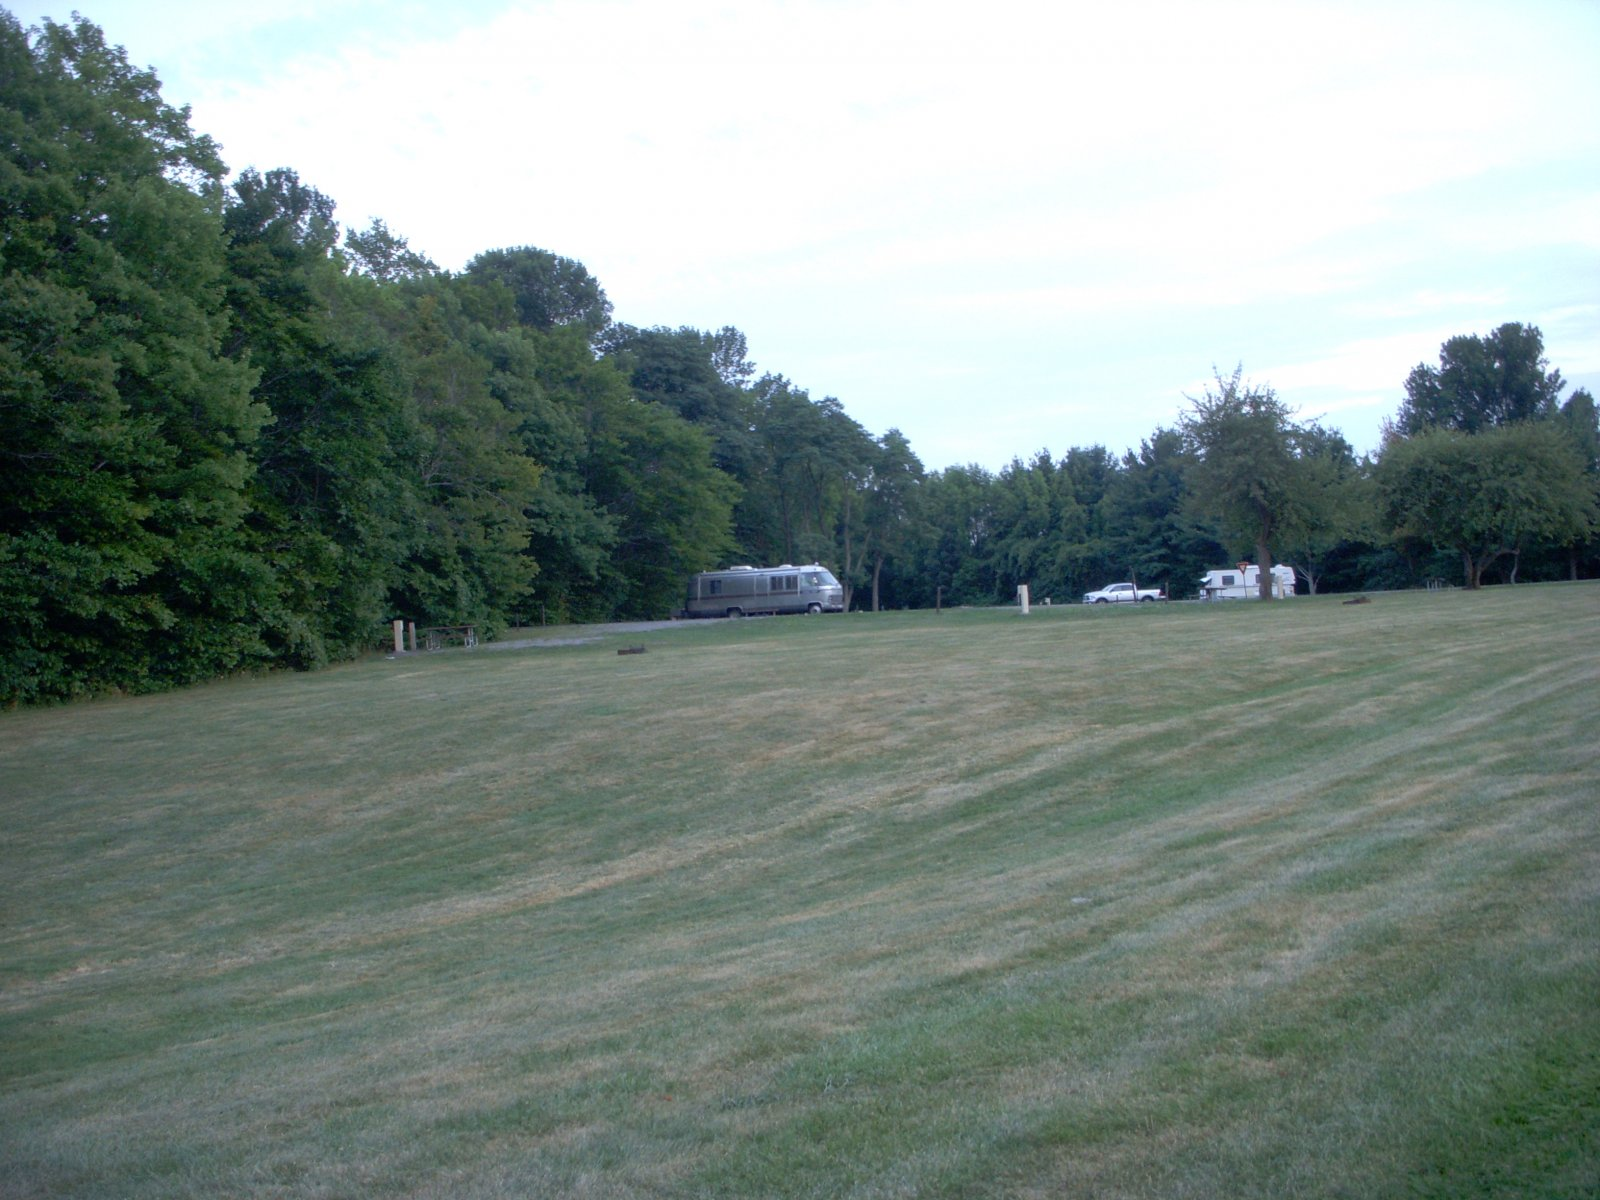 Click image for larger version  Name:Upstate New York Aug 2011 132.jpg Views:76 Size:283.0 KB ID:137546